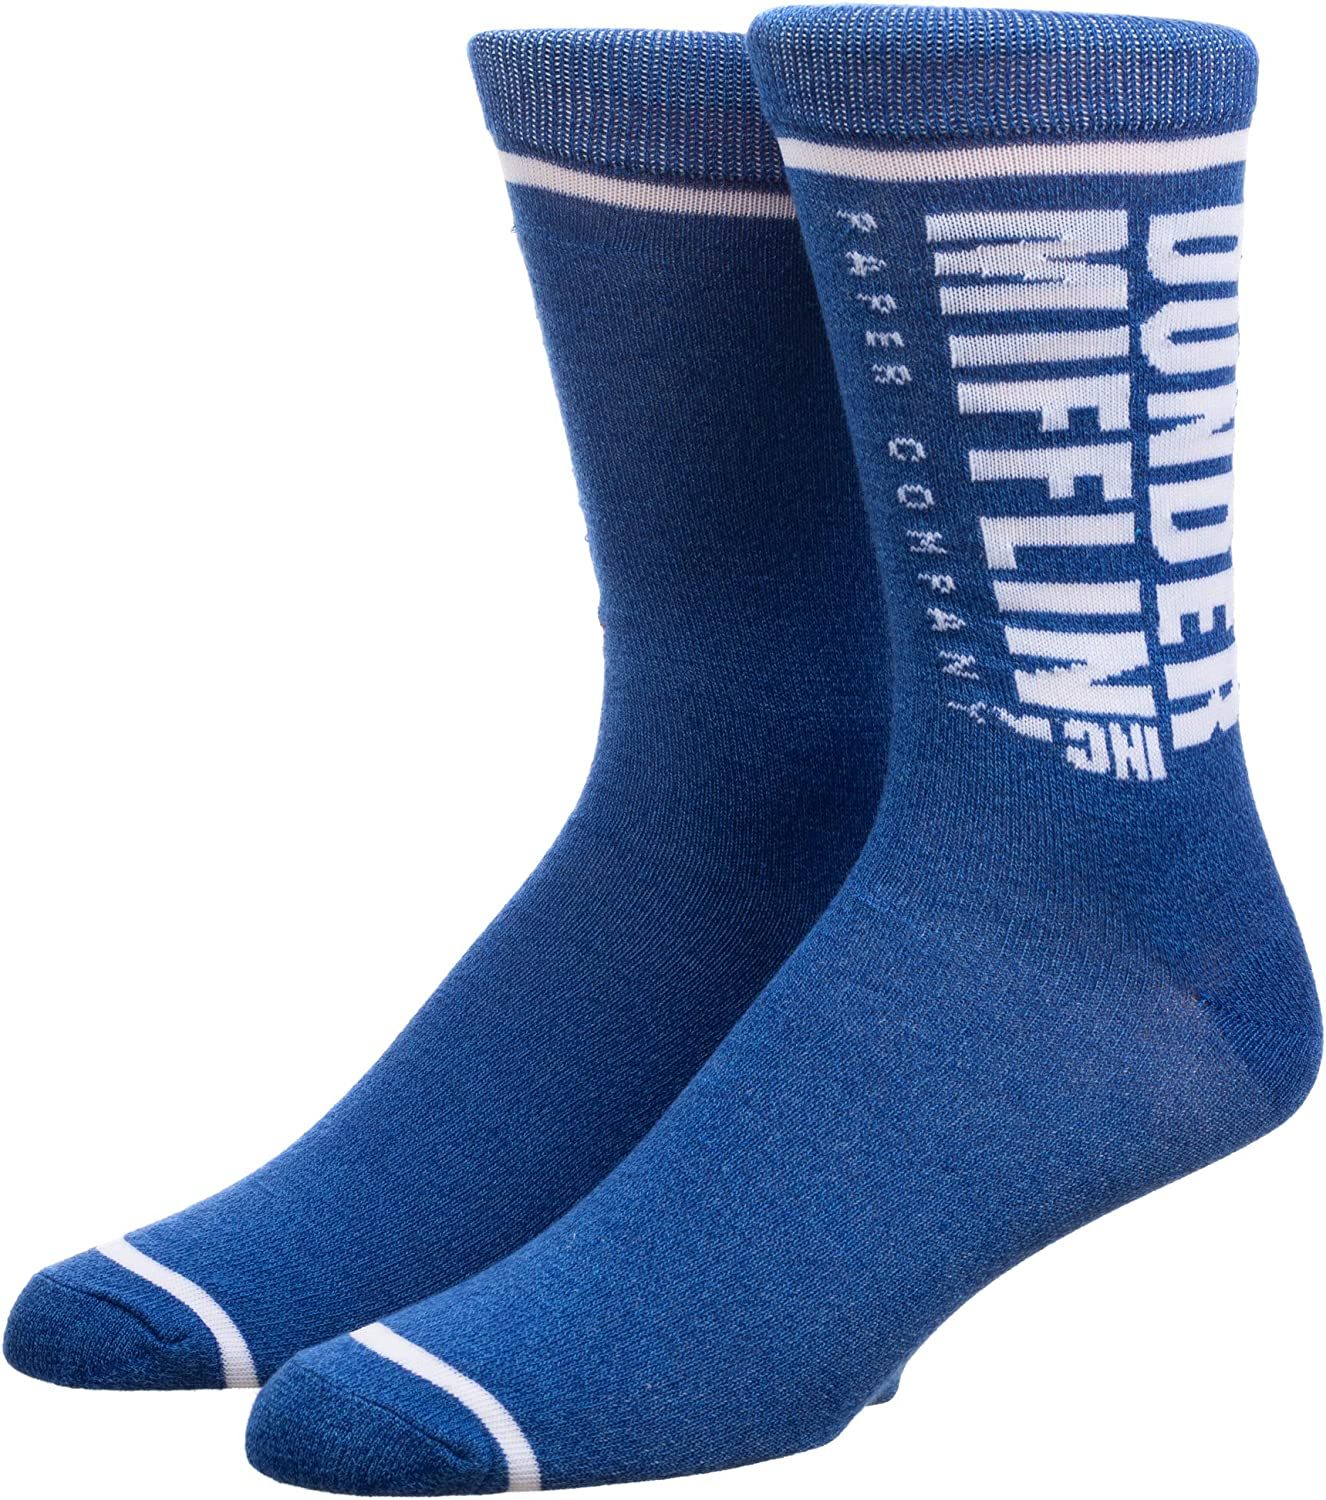 Bioworld The Office Dunder Mifflin Inc Adult Crew Socks